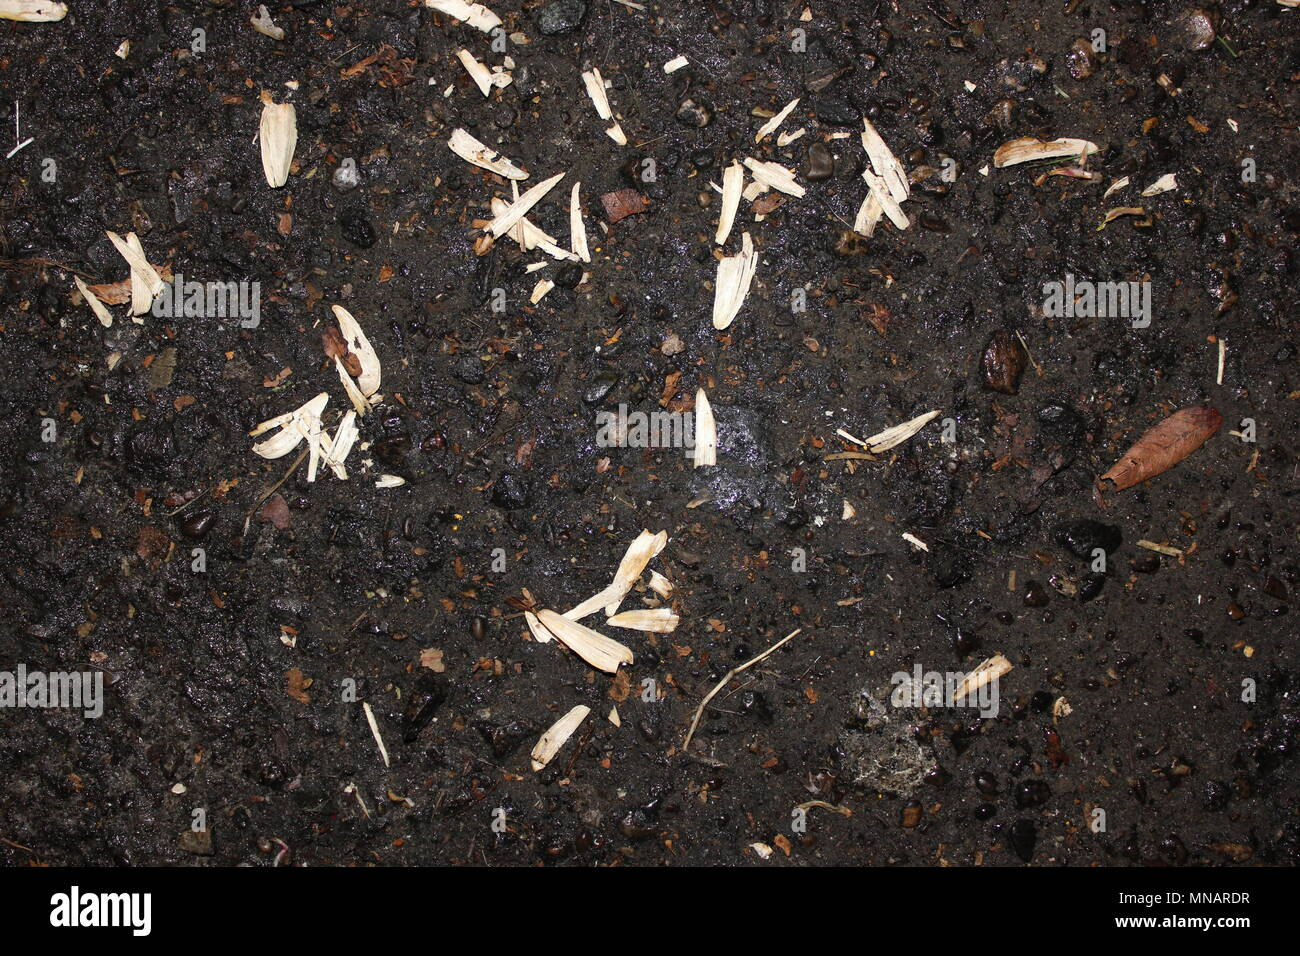 Smashed sunflower seeds shells scattered in a parking lot. - Stock Image